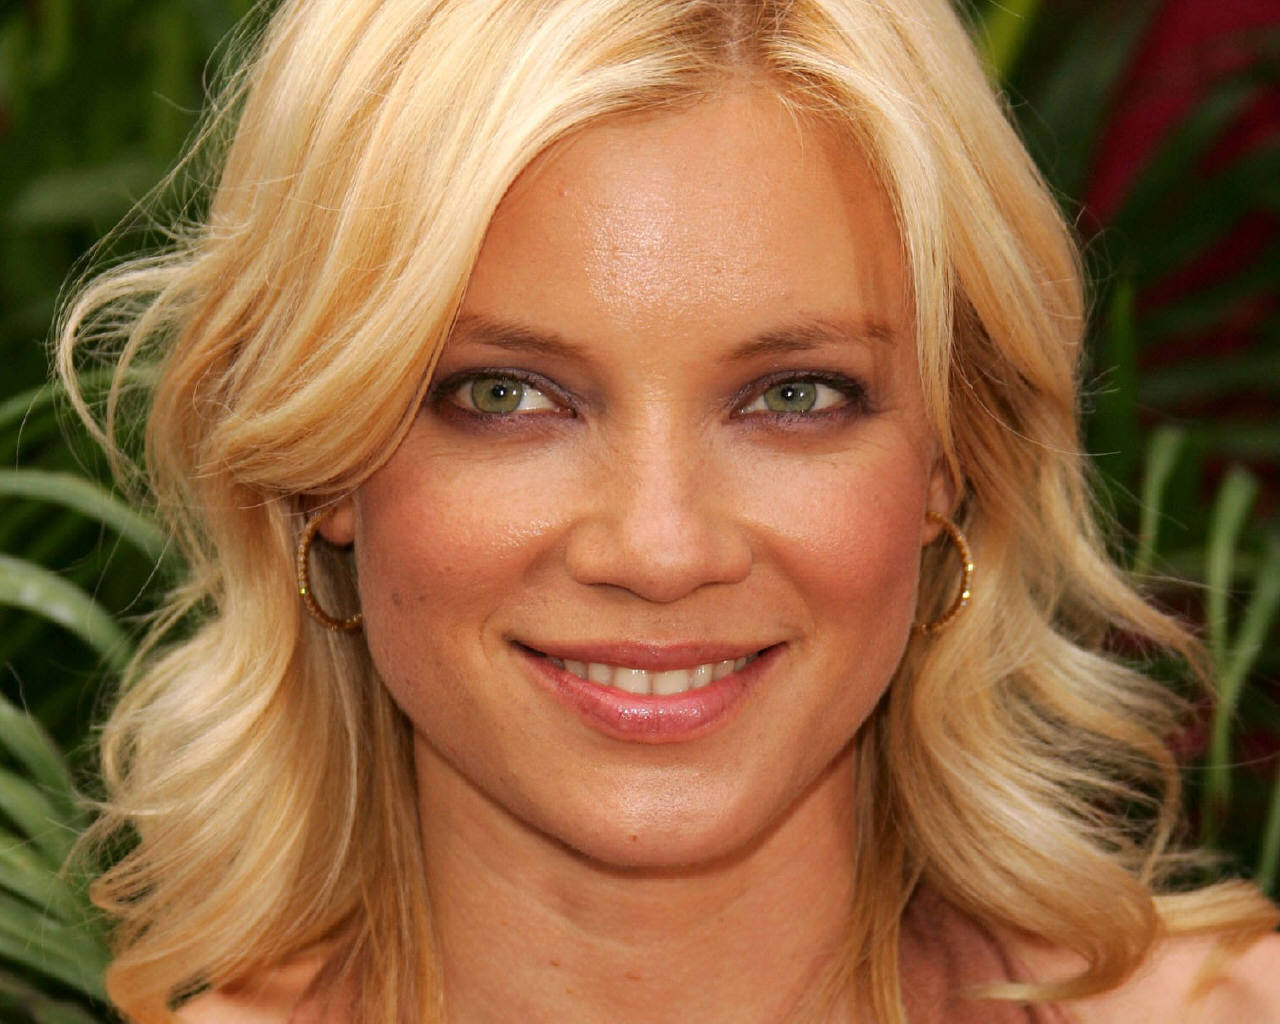 The 42-year old daughter of father John Boden and mother Judy Lysle, 168 cm tall Amy Smart in 2018 photo